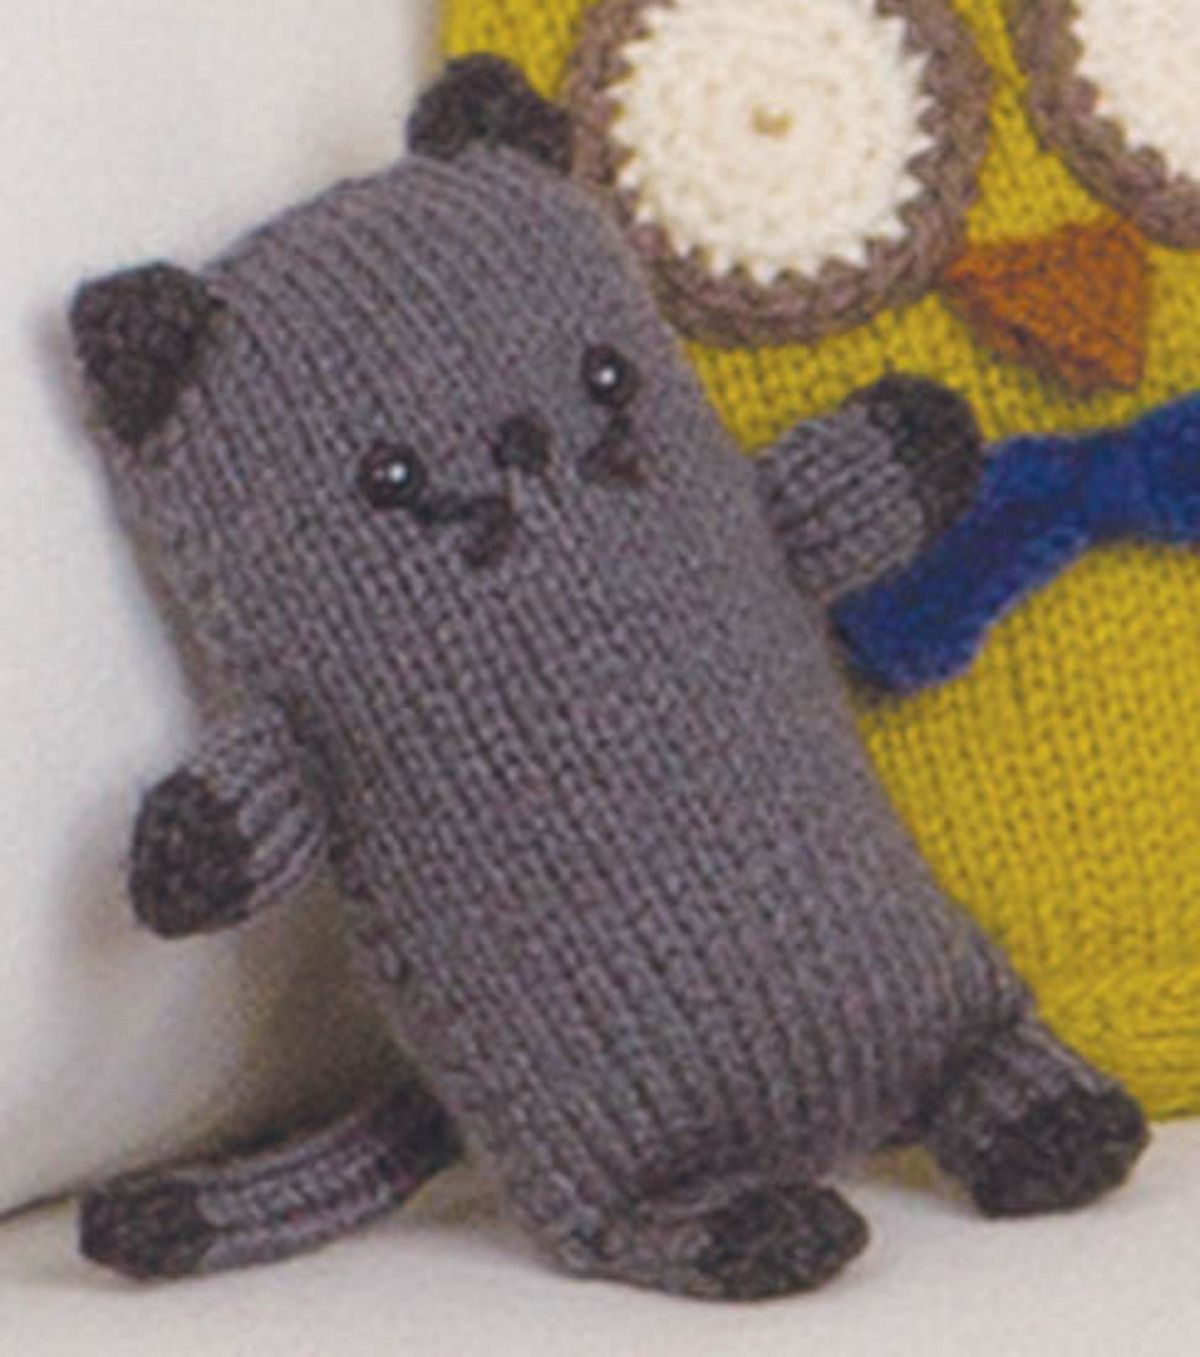 Knitting Patterns Loom Knit a Cat | Pinterest | Goal, Cat and ...